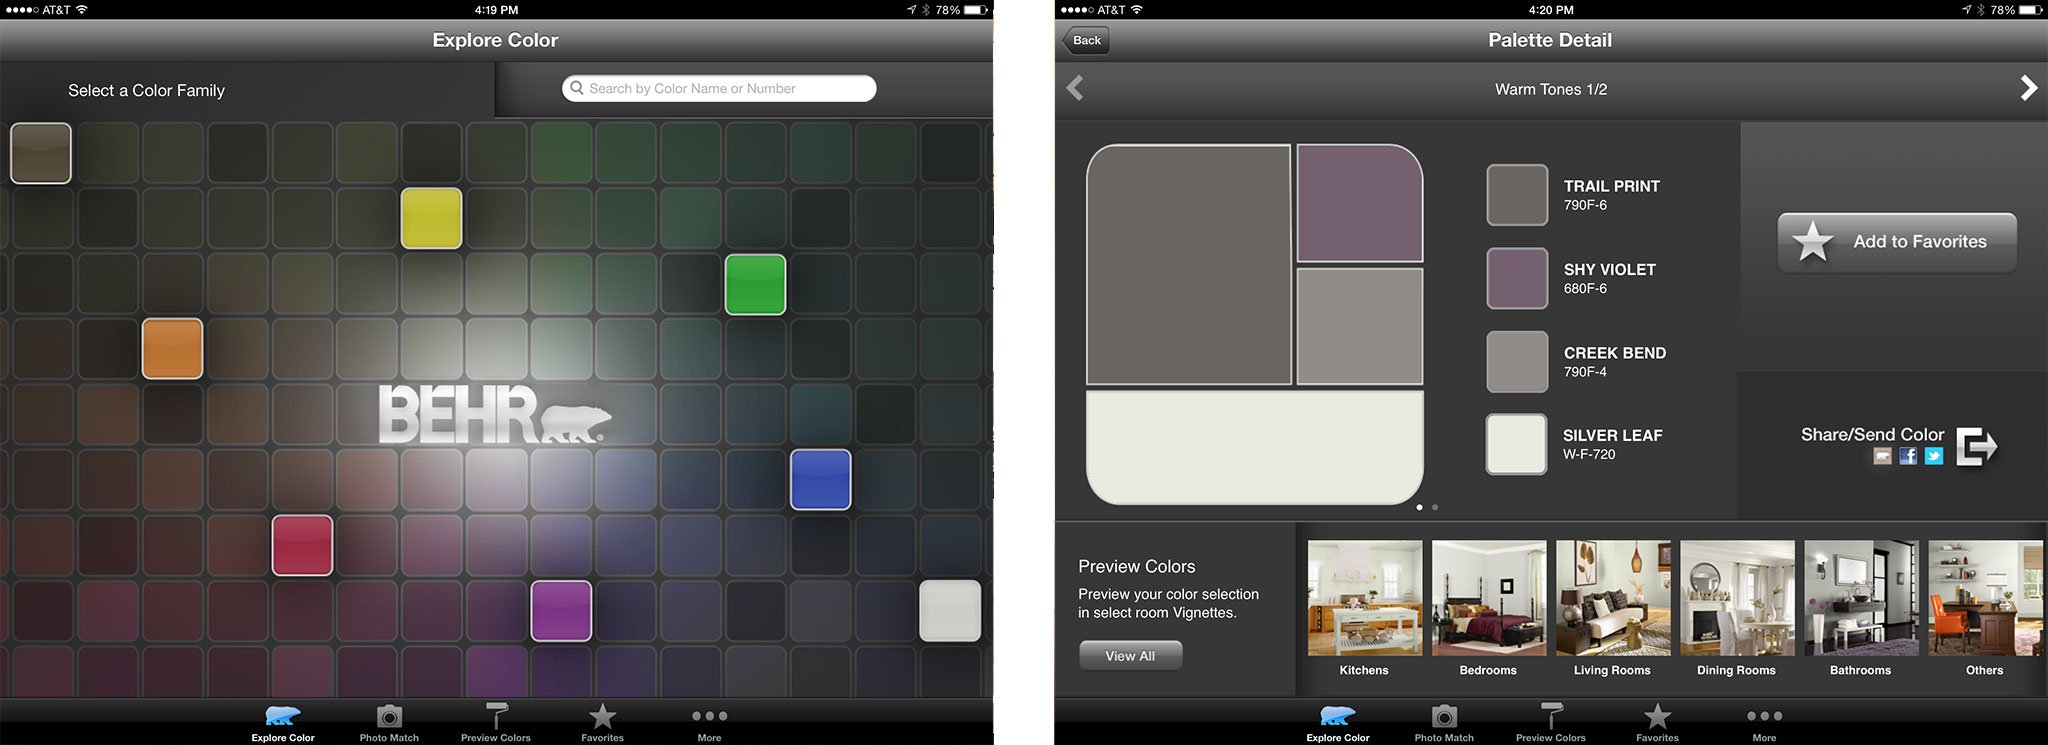 Best home design and improvement apps for iPad: ColorSmart by BEHR